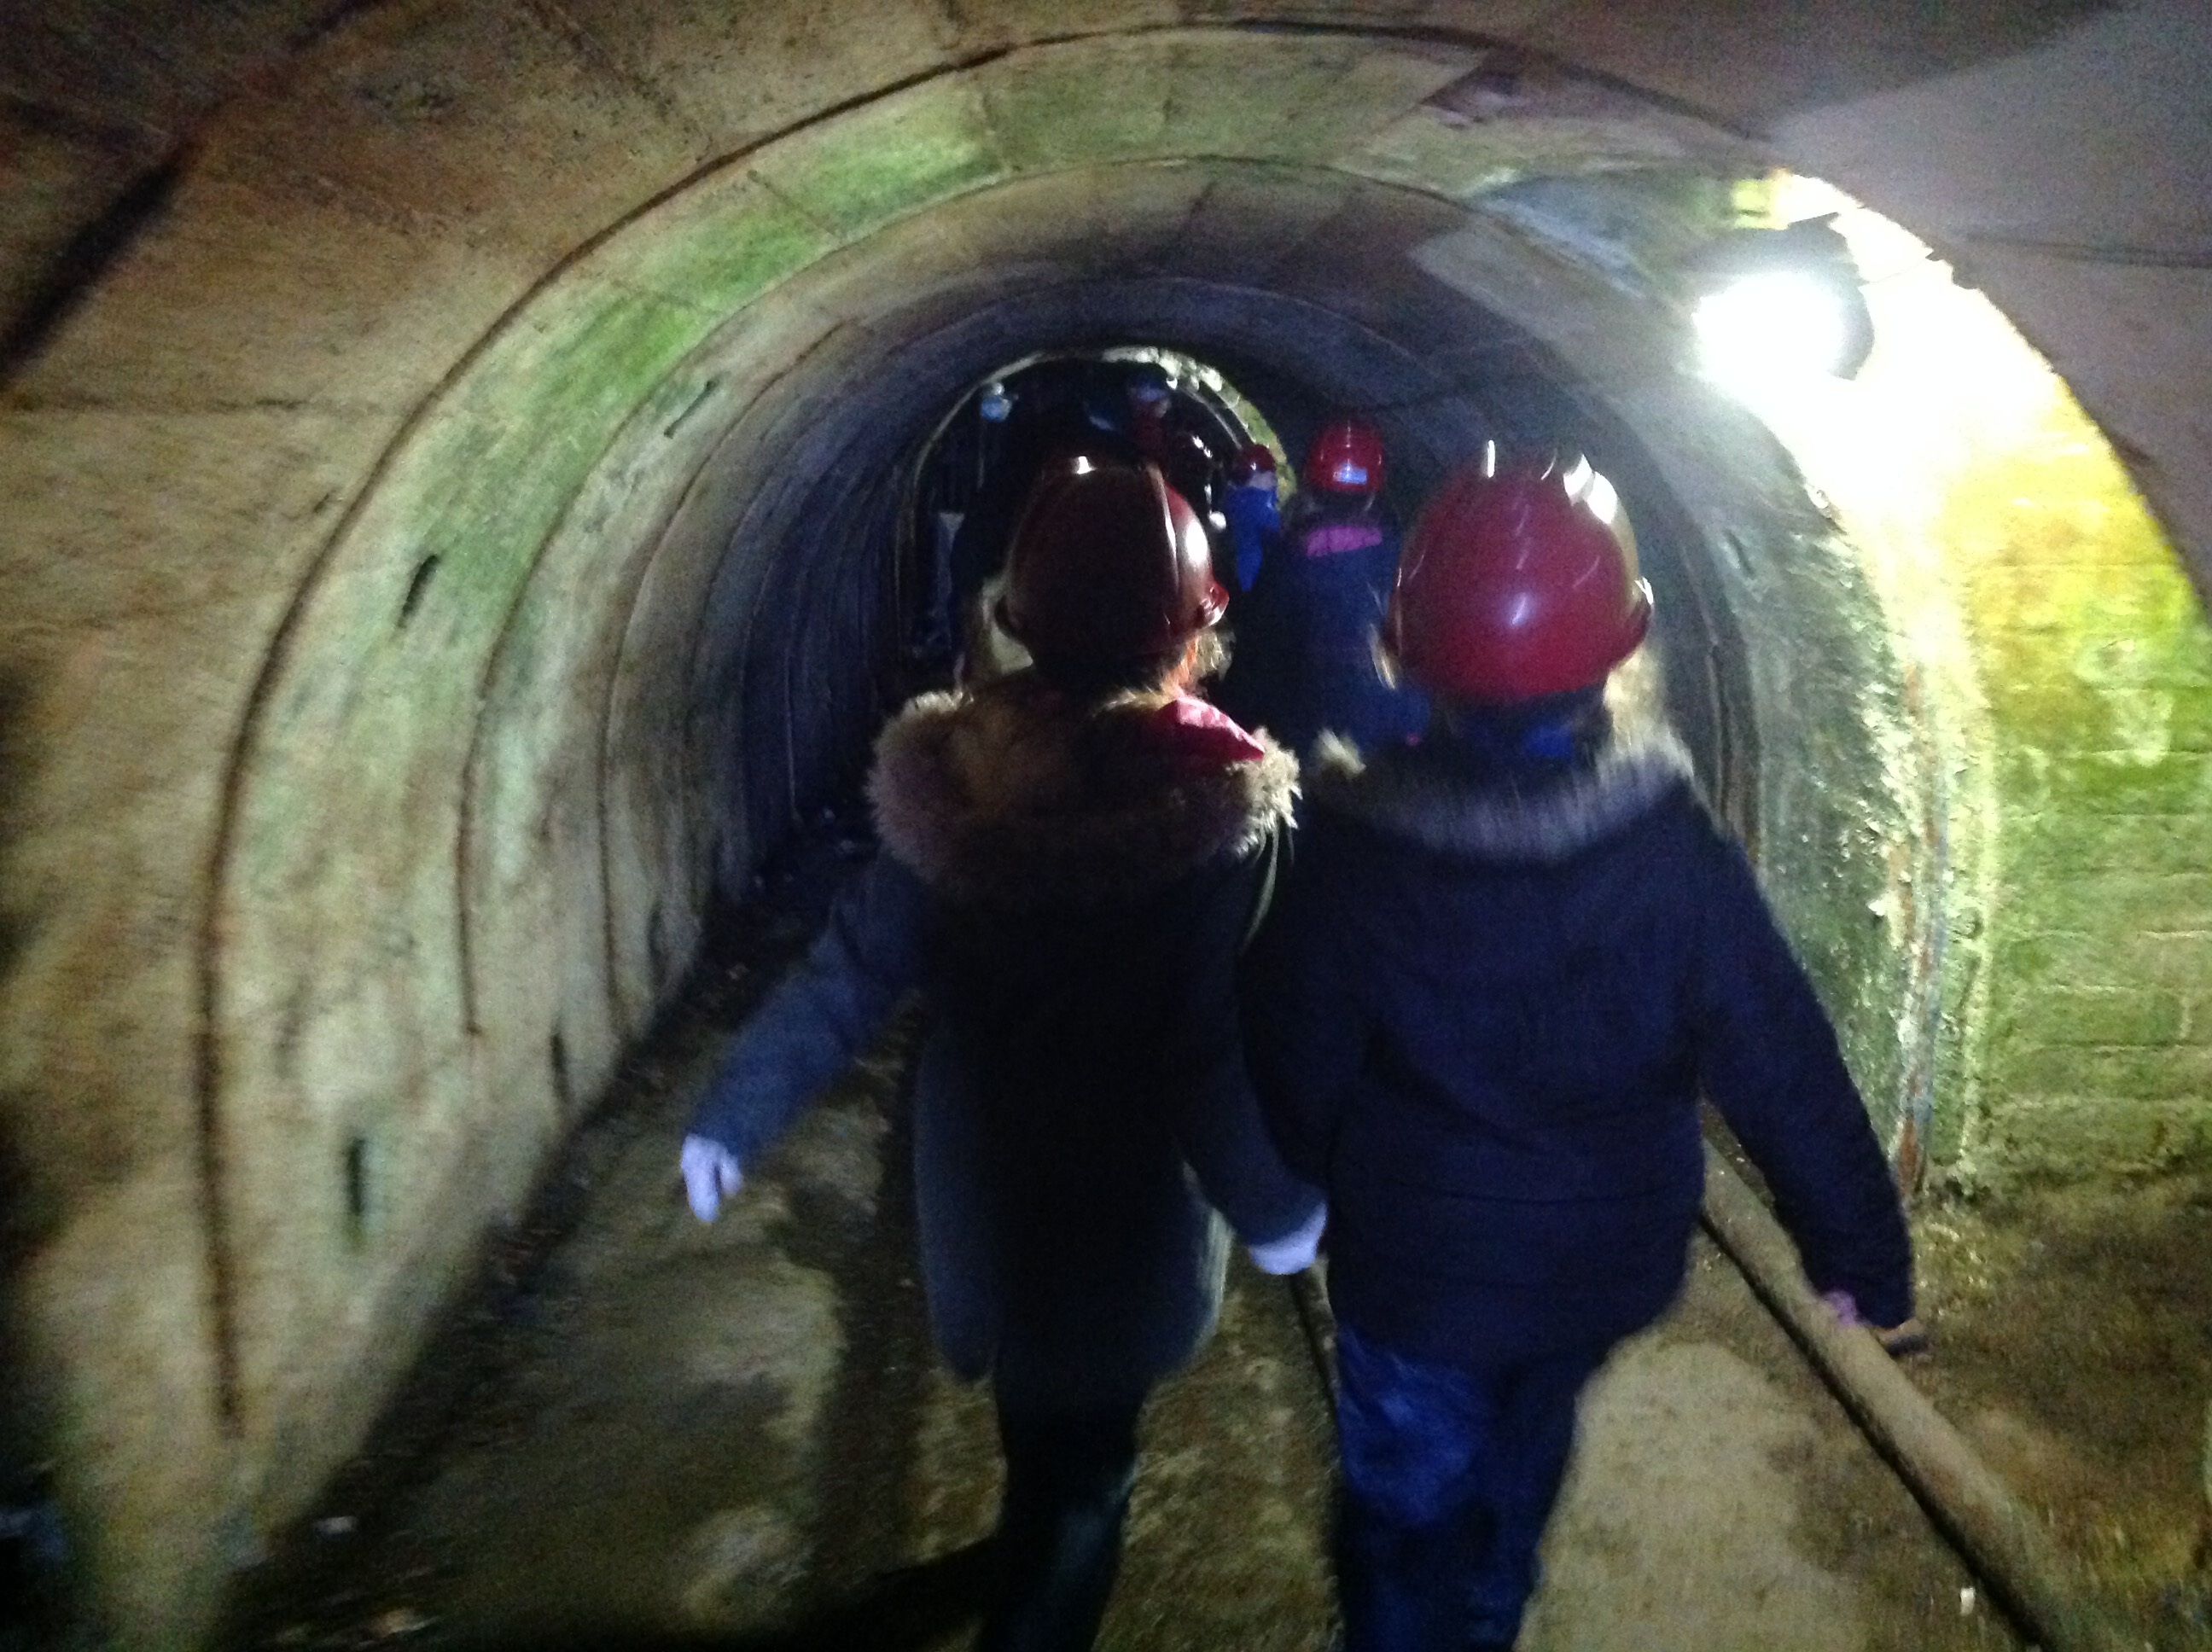 Into the mine